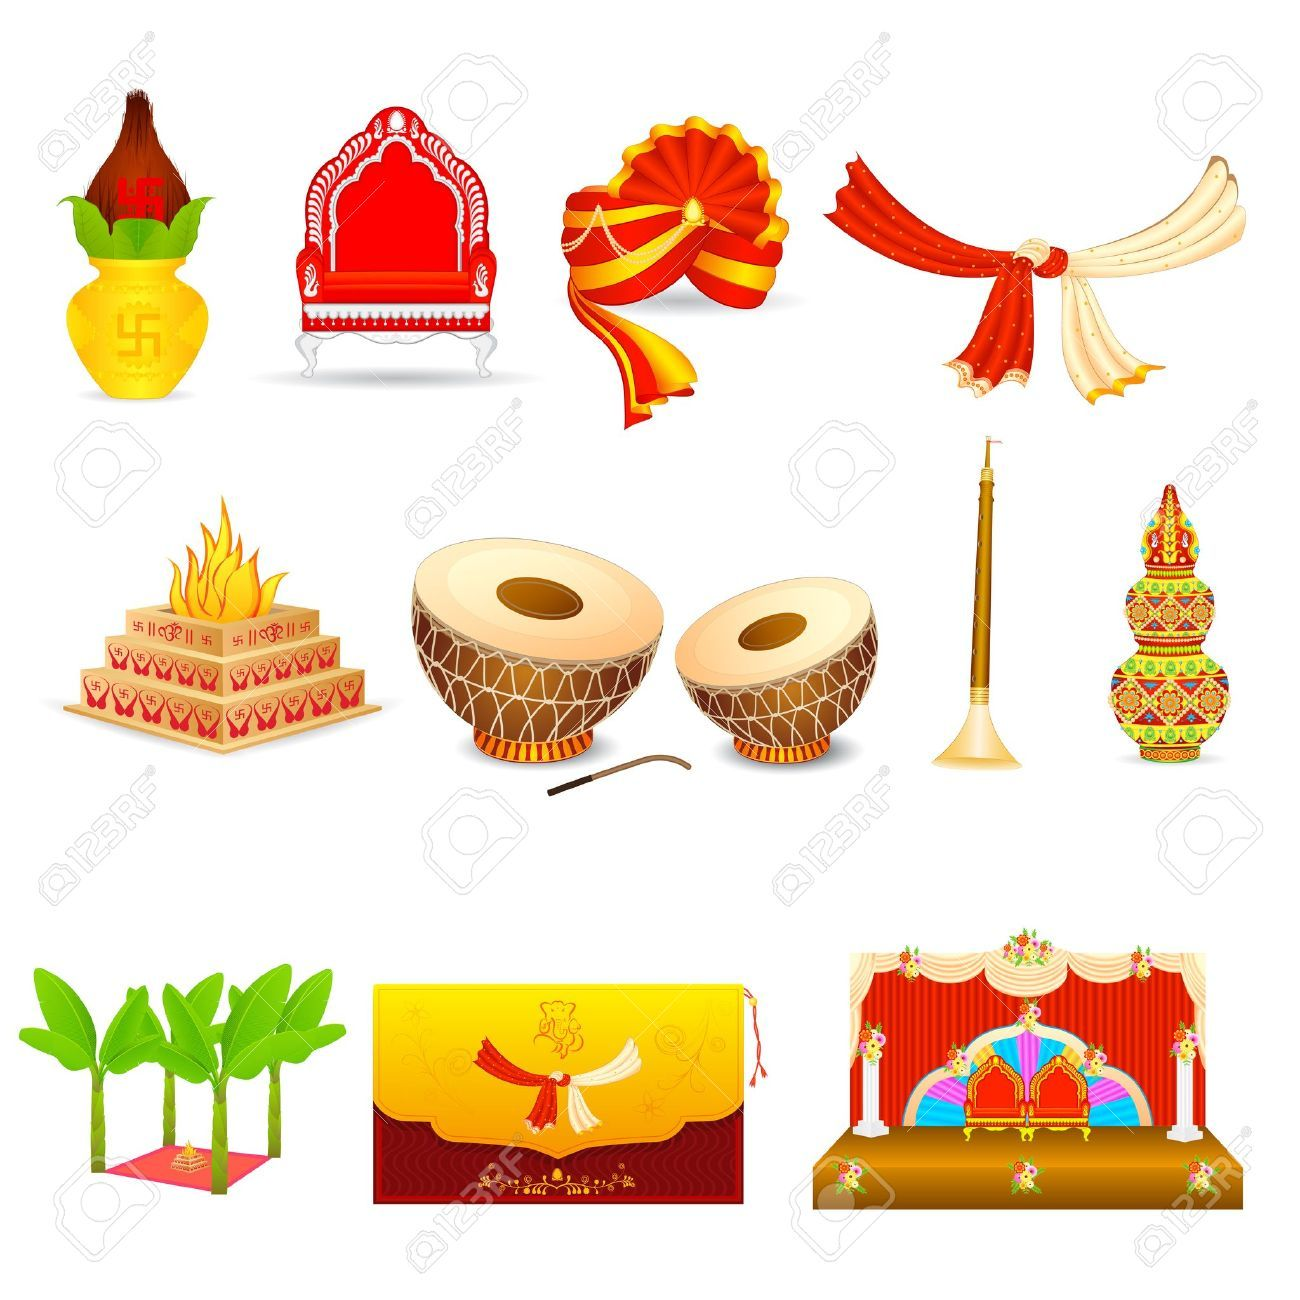 indian wedding cliparts clipart collection [ 1300 x 1300 Pixel ]